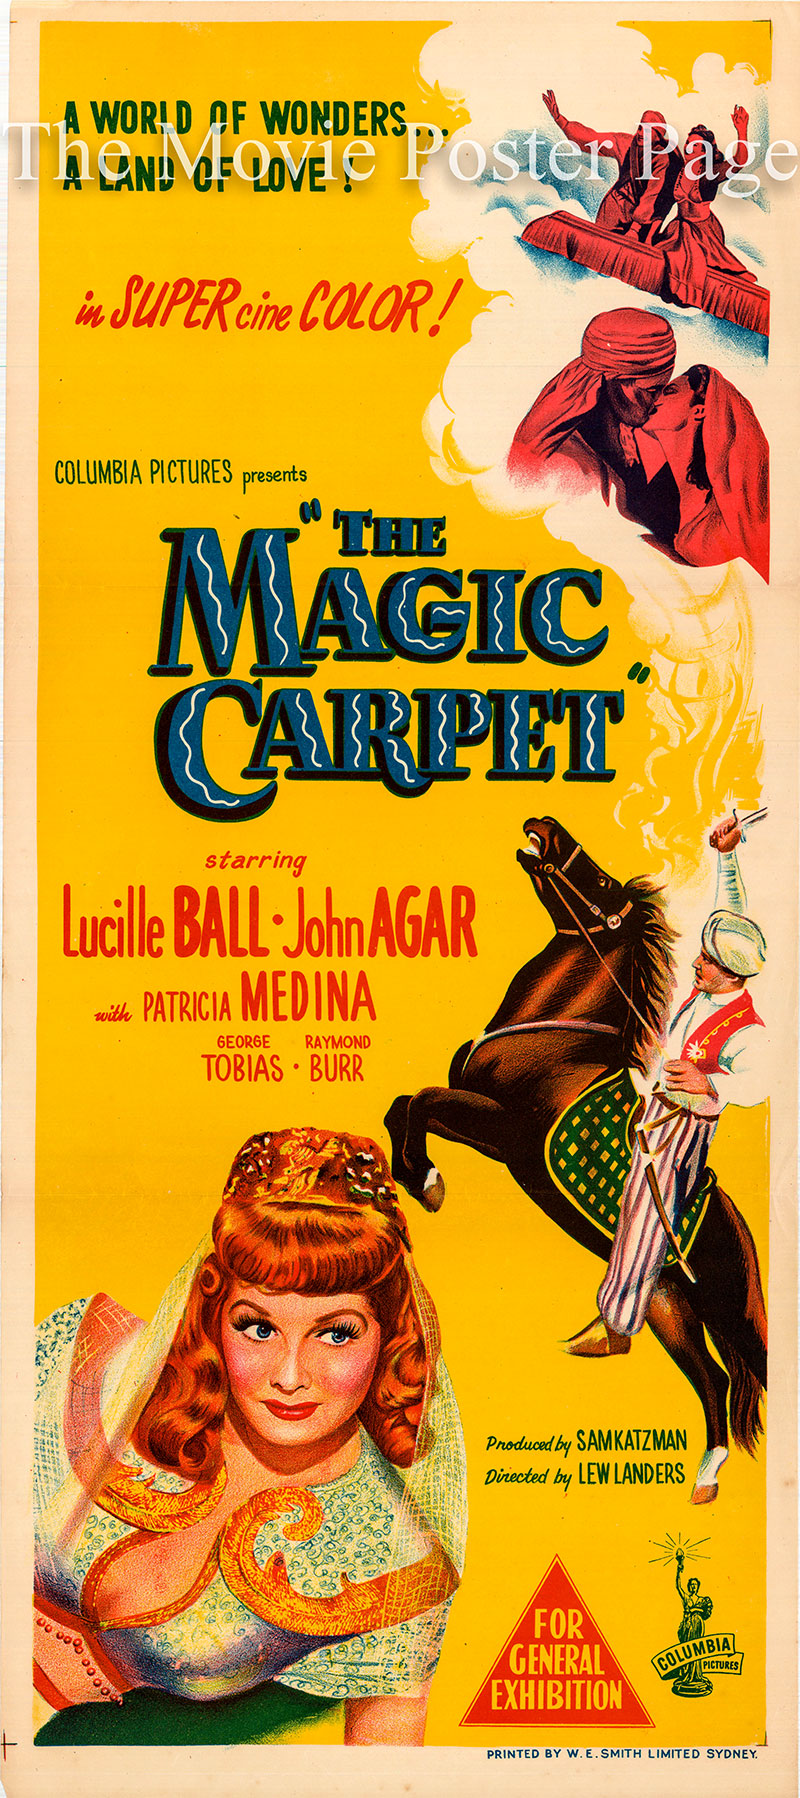 Pictured is an Australian Day Bill for the 1951 Lew Landers film The Magic Carpet starring Lucille Ball.